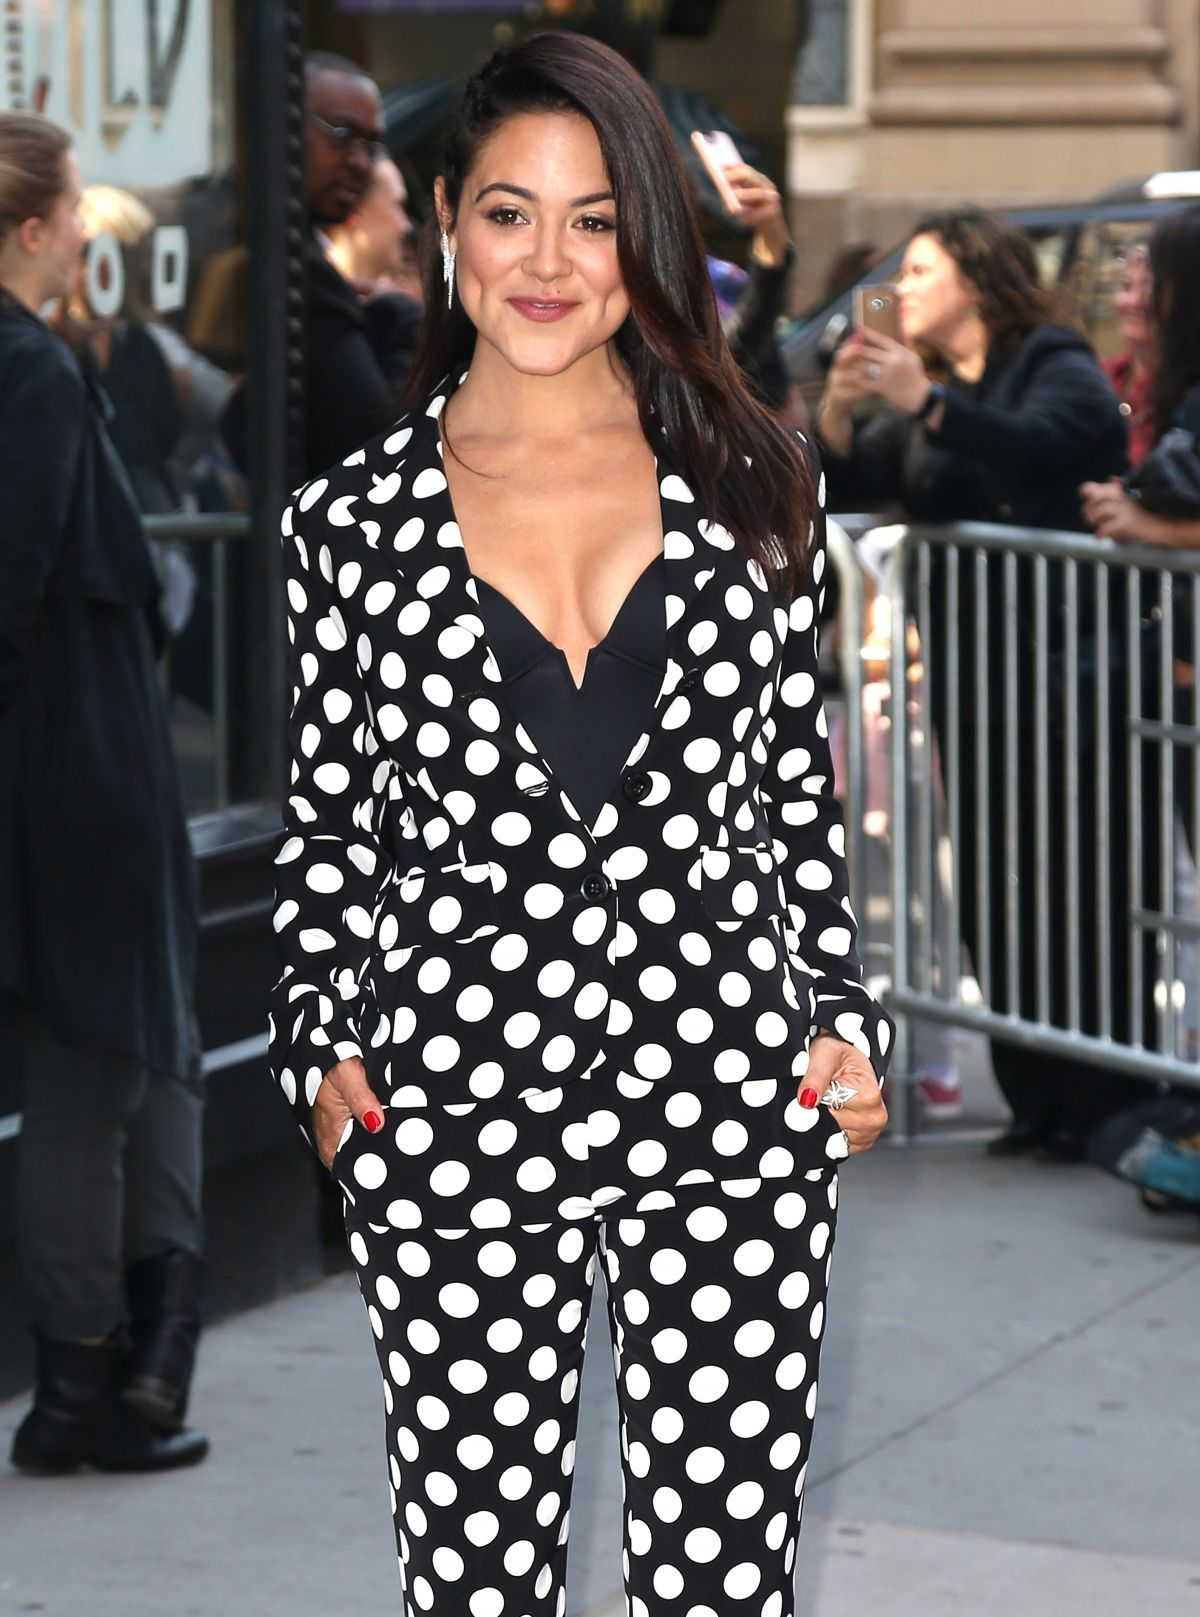 Camille Guaty Arrives at AOL Studios in New York